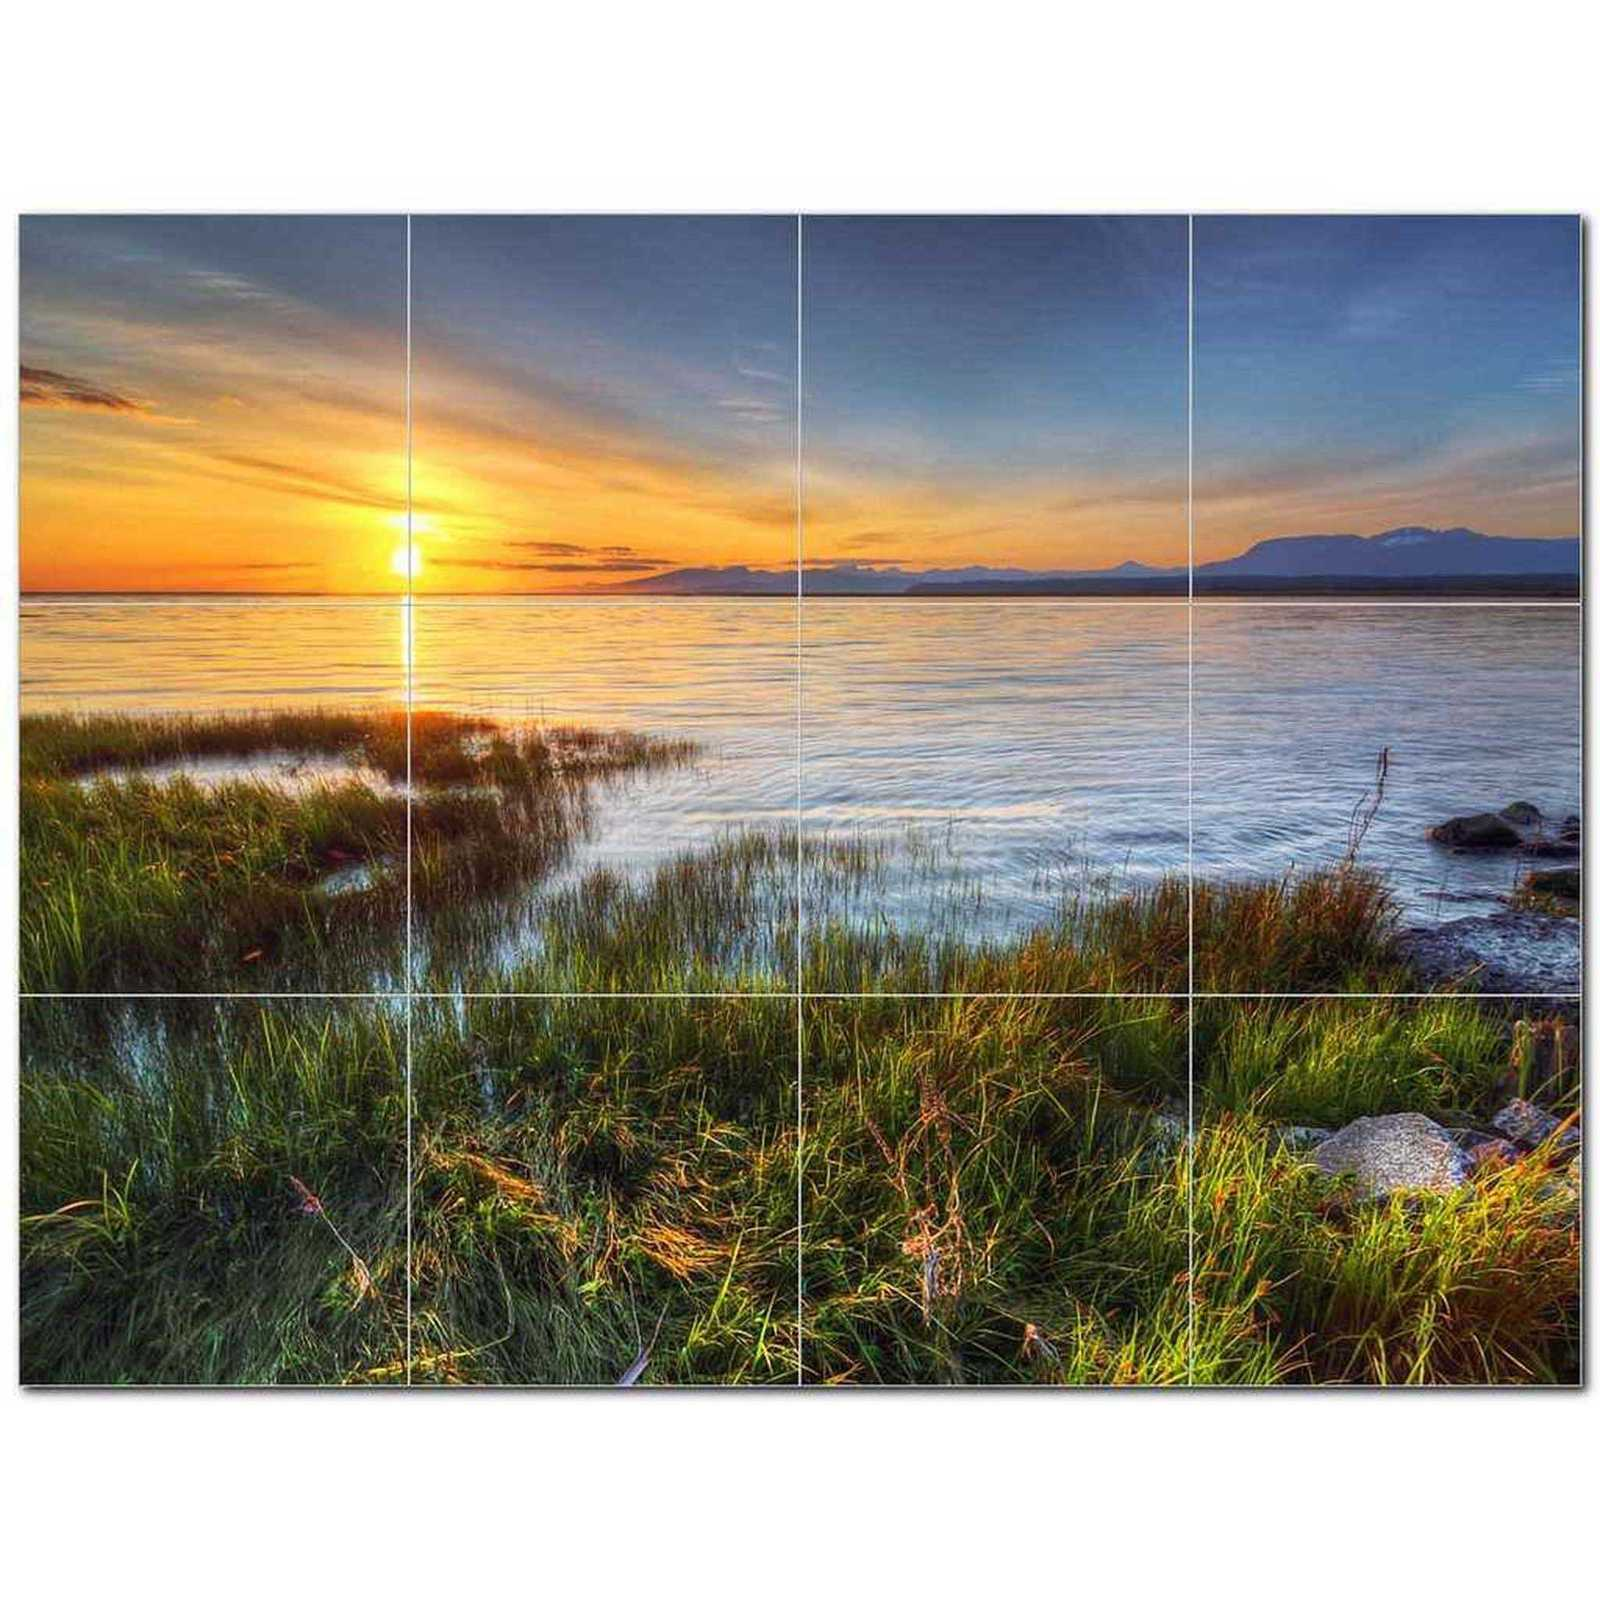 Primary image for Sunset Picture Ceramic Tile Mural Kitchen Backsplash Bathroom Shower BAZ405952